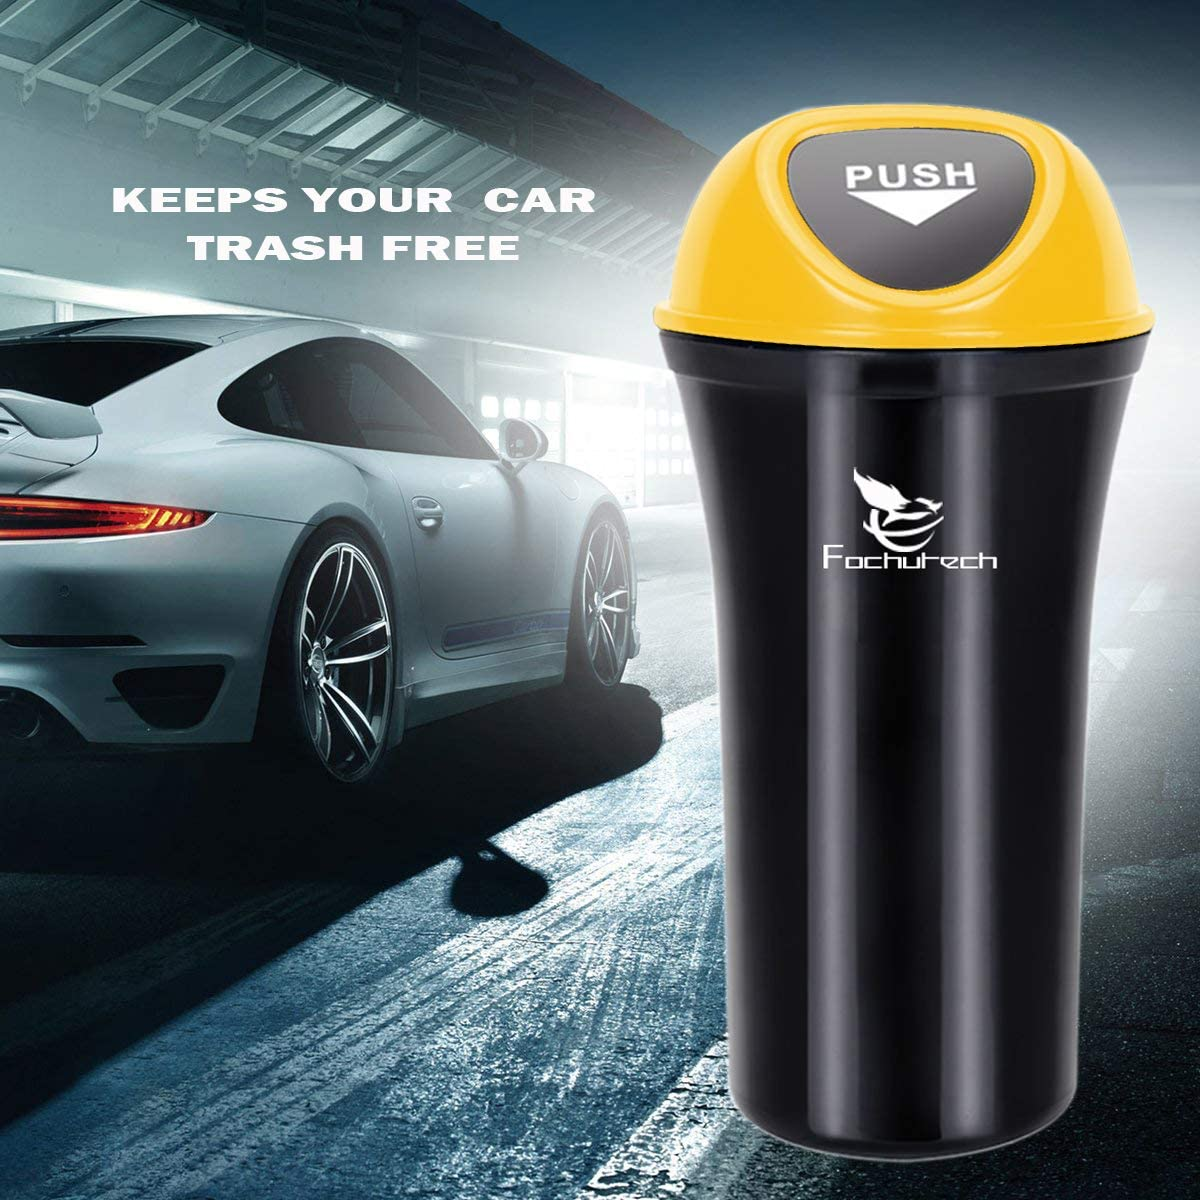 Car Trash Can with Lid Small Car Trash Bin Portable Vehicle Auto Car Garbage Can Bin Trash Container Fits Cup Holder Console Door Pocket Home Office Use 2 Packs Black